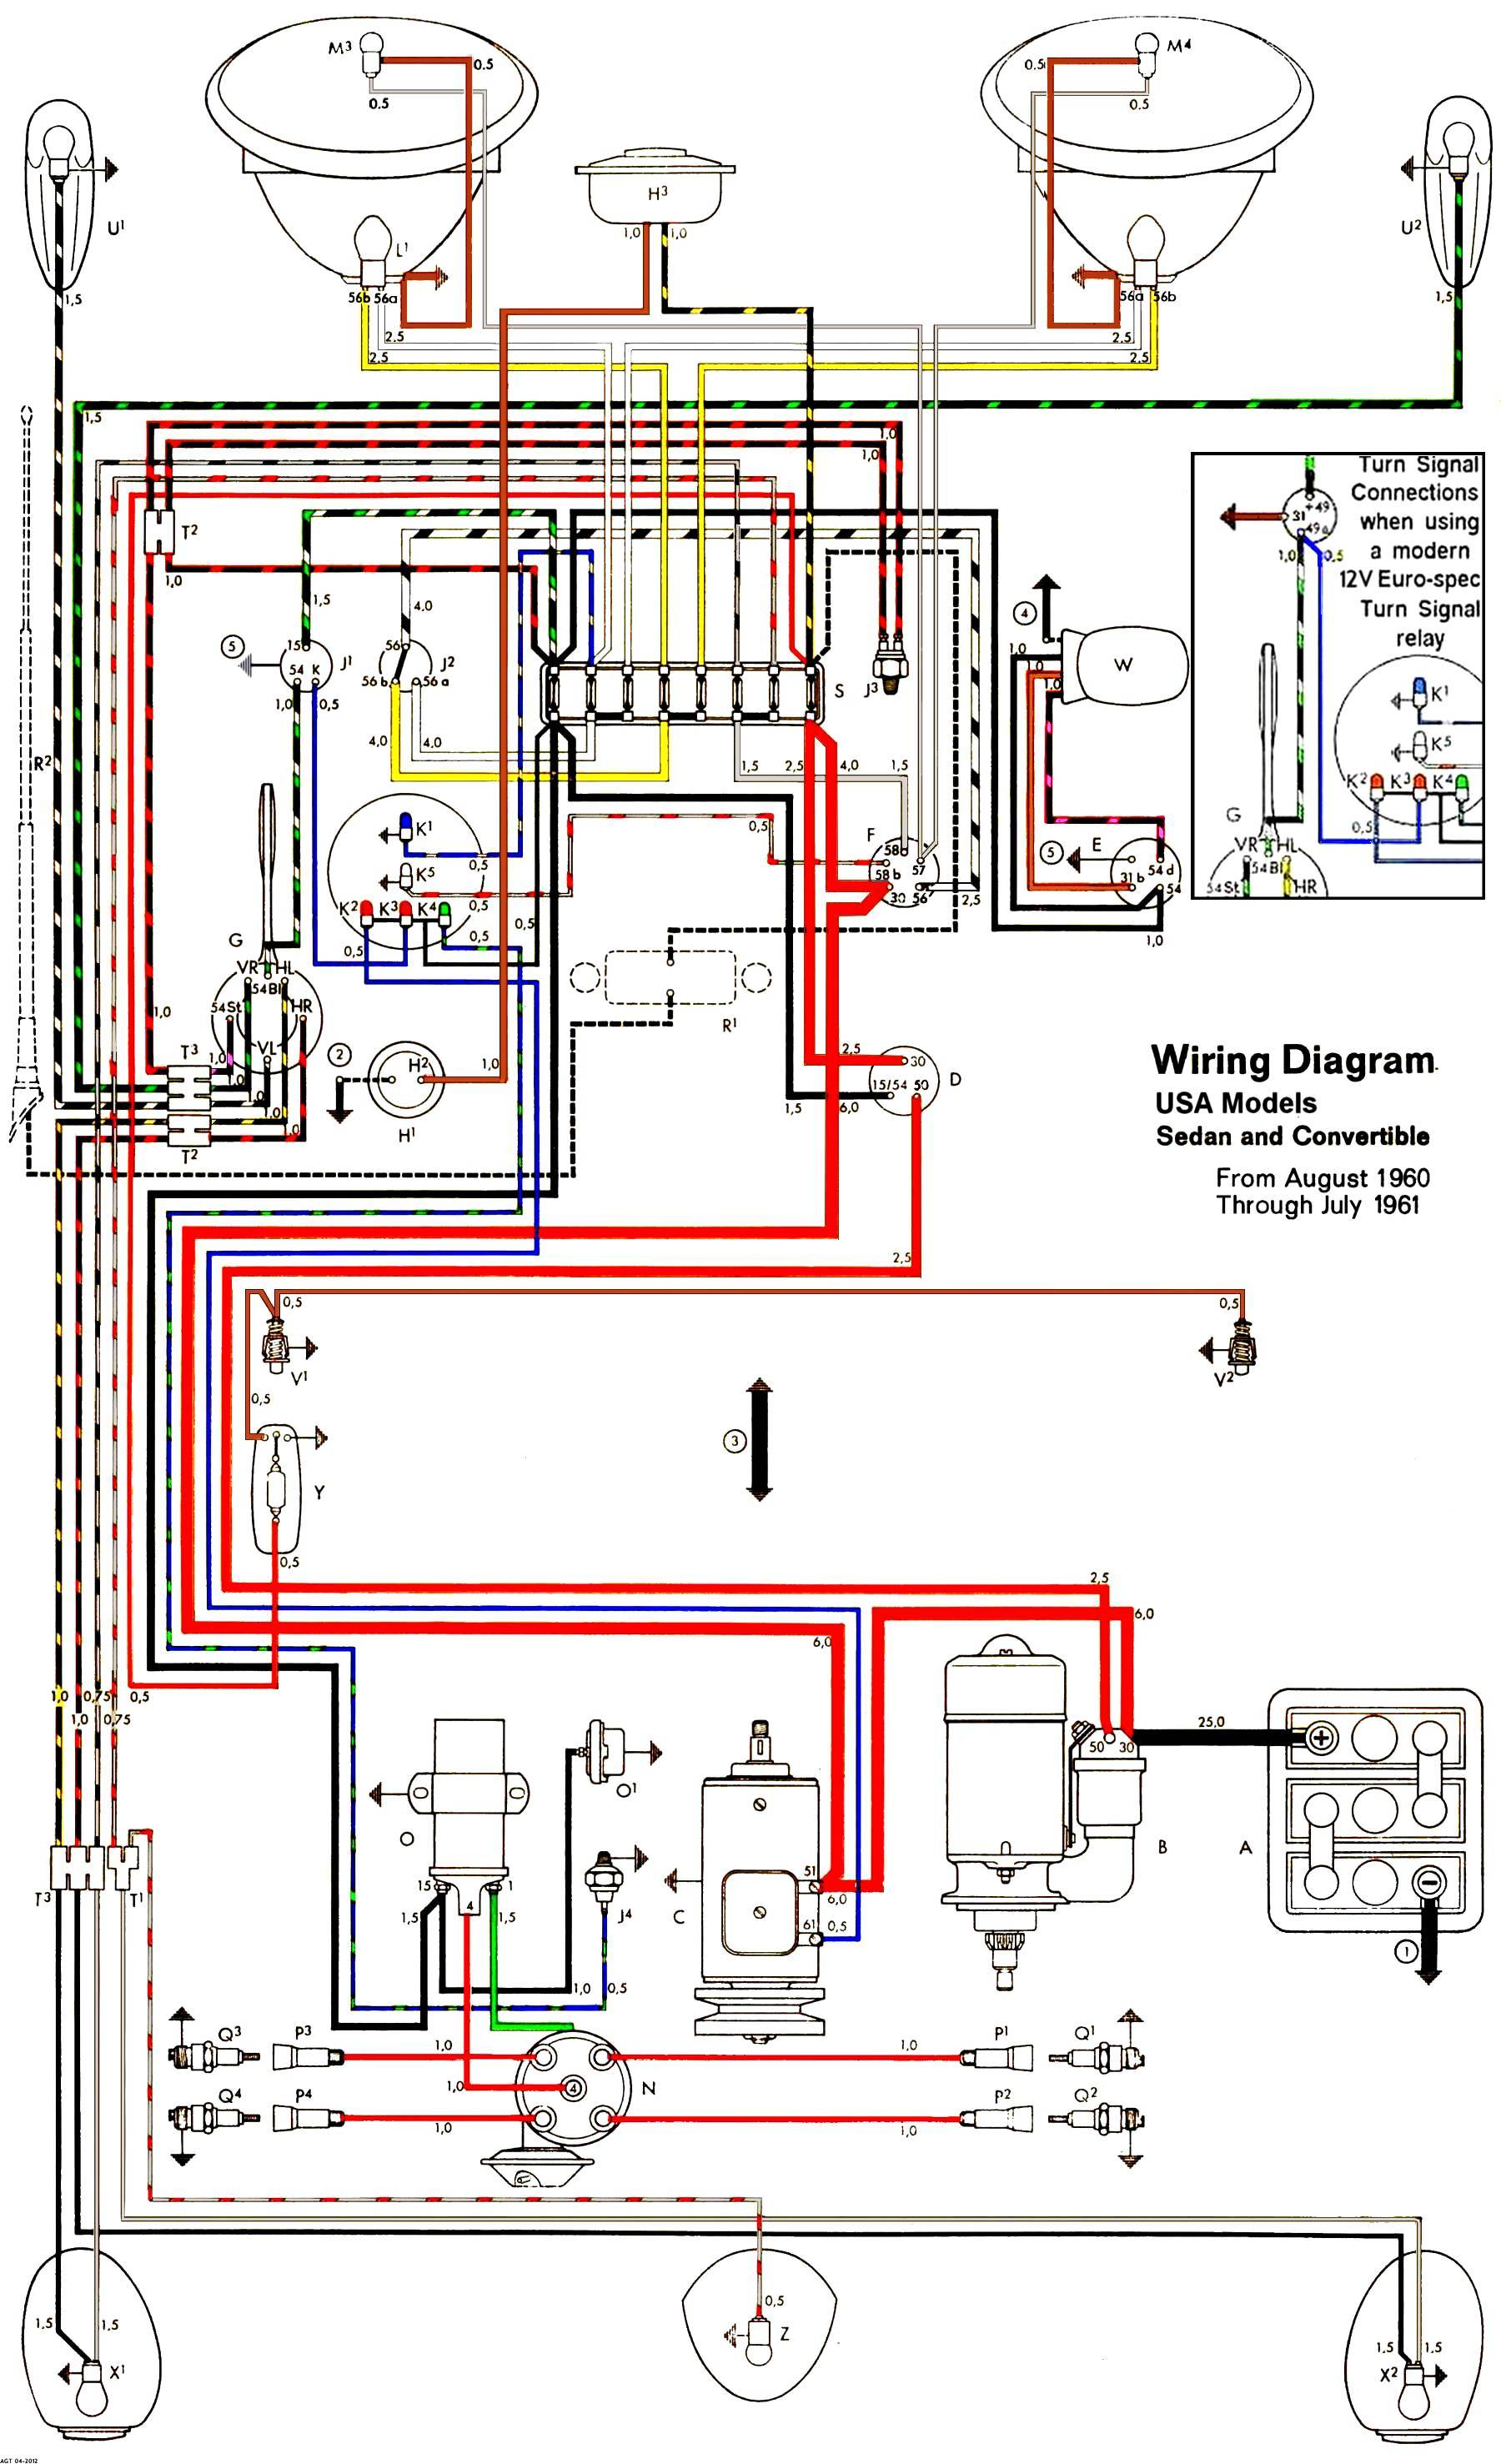 wiring diagram for t1 opinions about wiring diagram u2022 rh voterid co